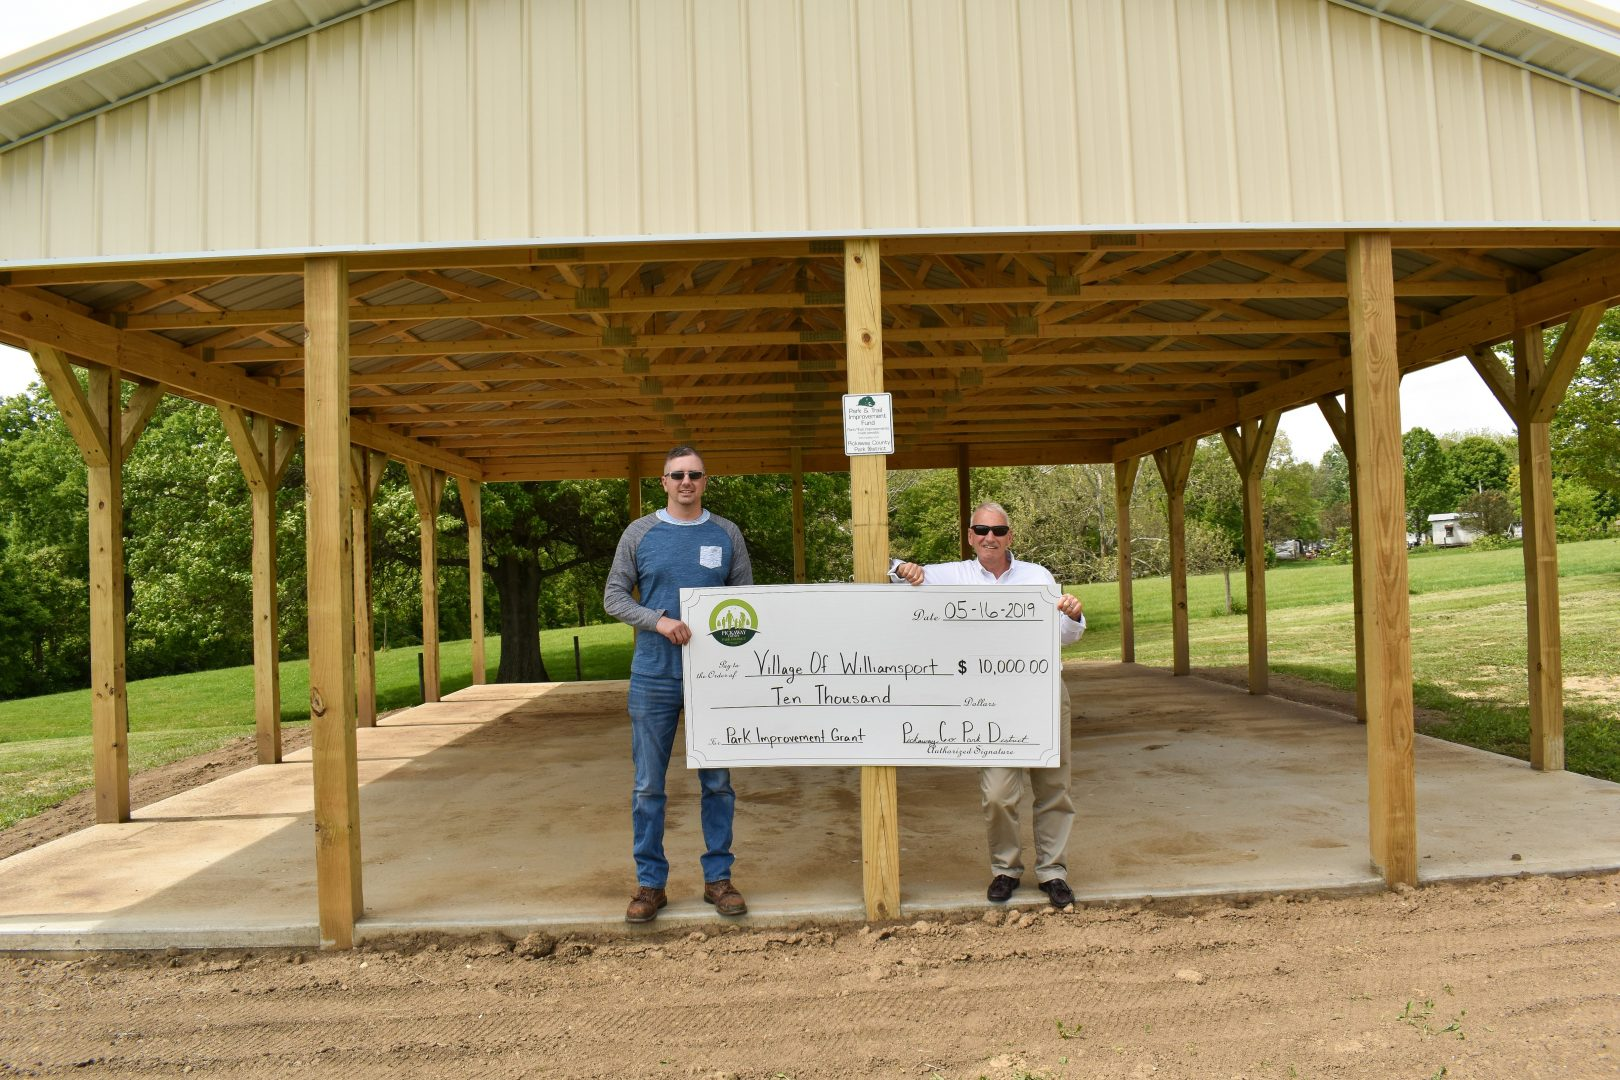 2019 Grant to the Village of Williamsport for a shelter house at Ballard Park